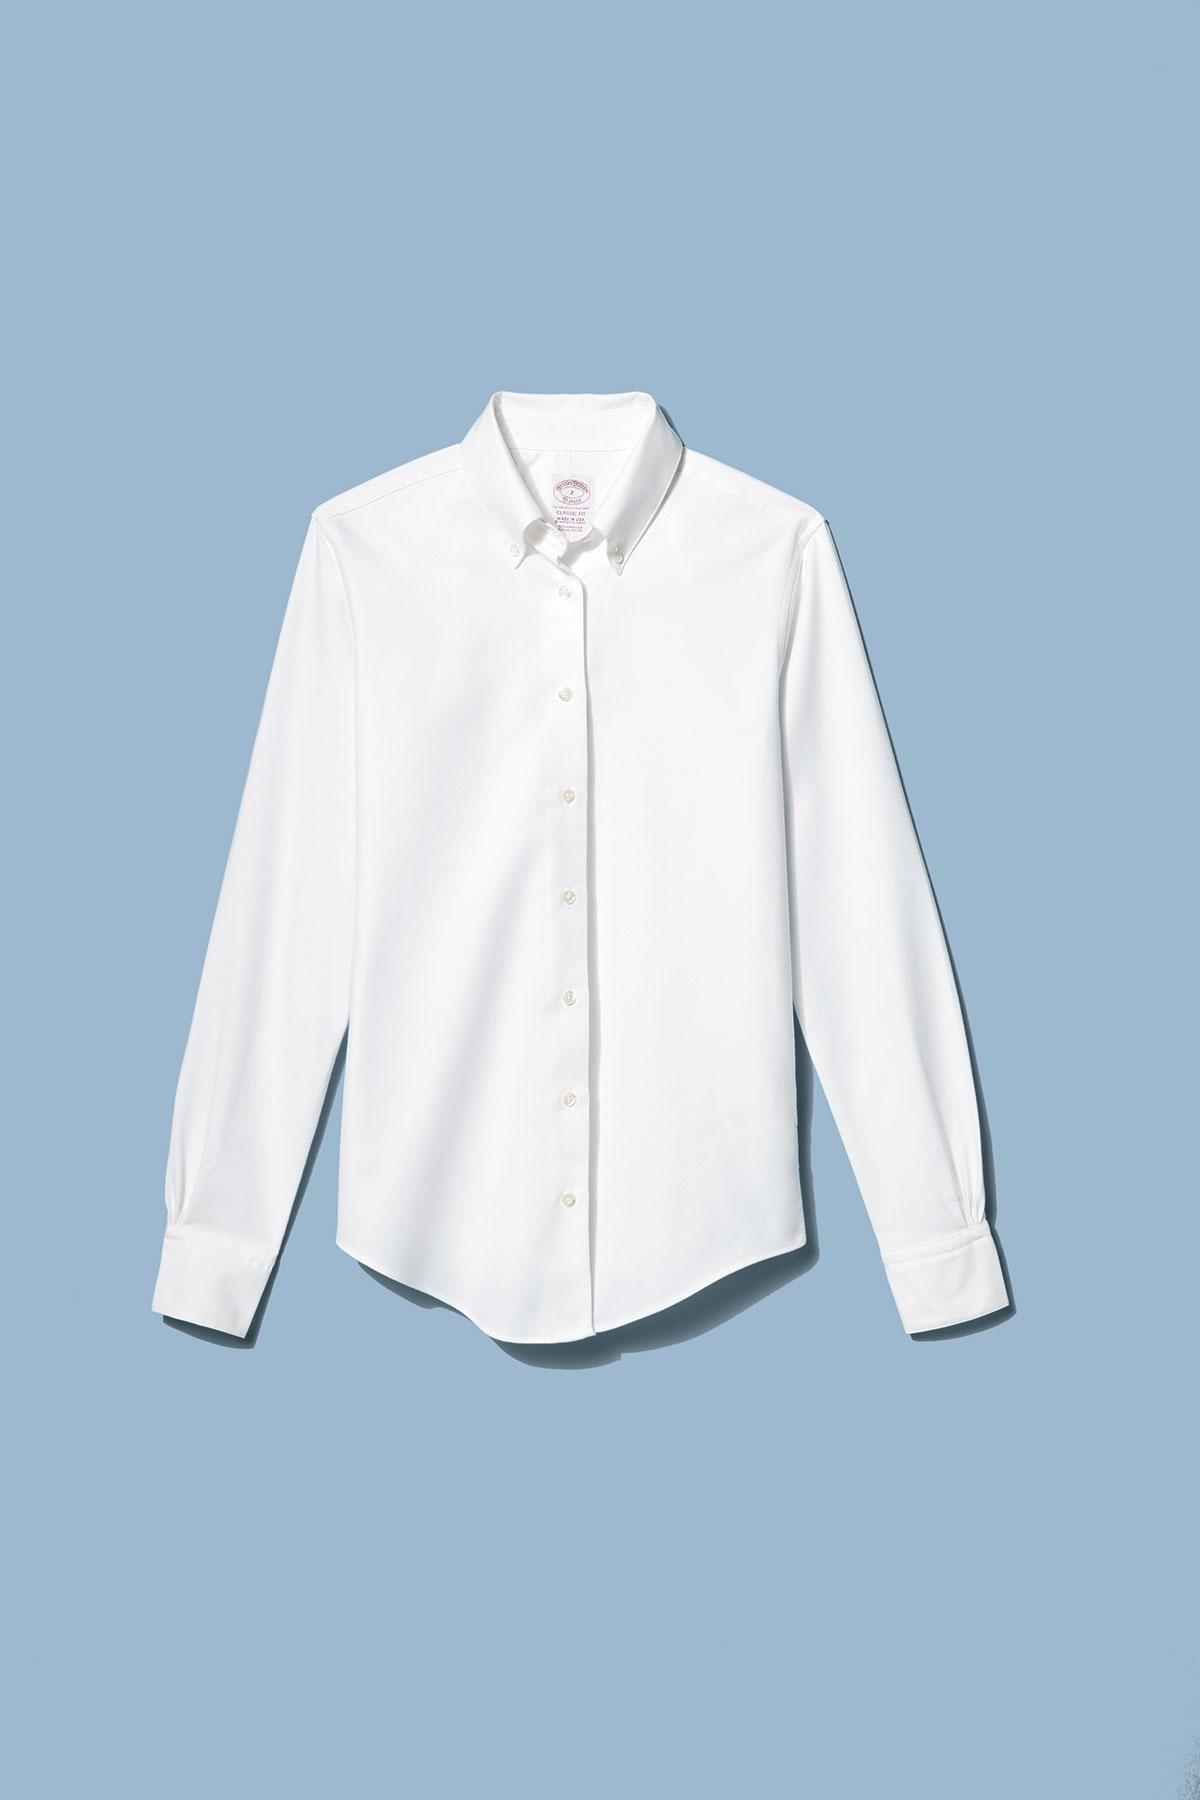 Brooks Brothers Classic-Fit Supima Cotton Oxford Button-Down Shirt